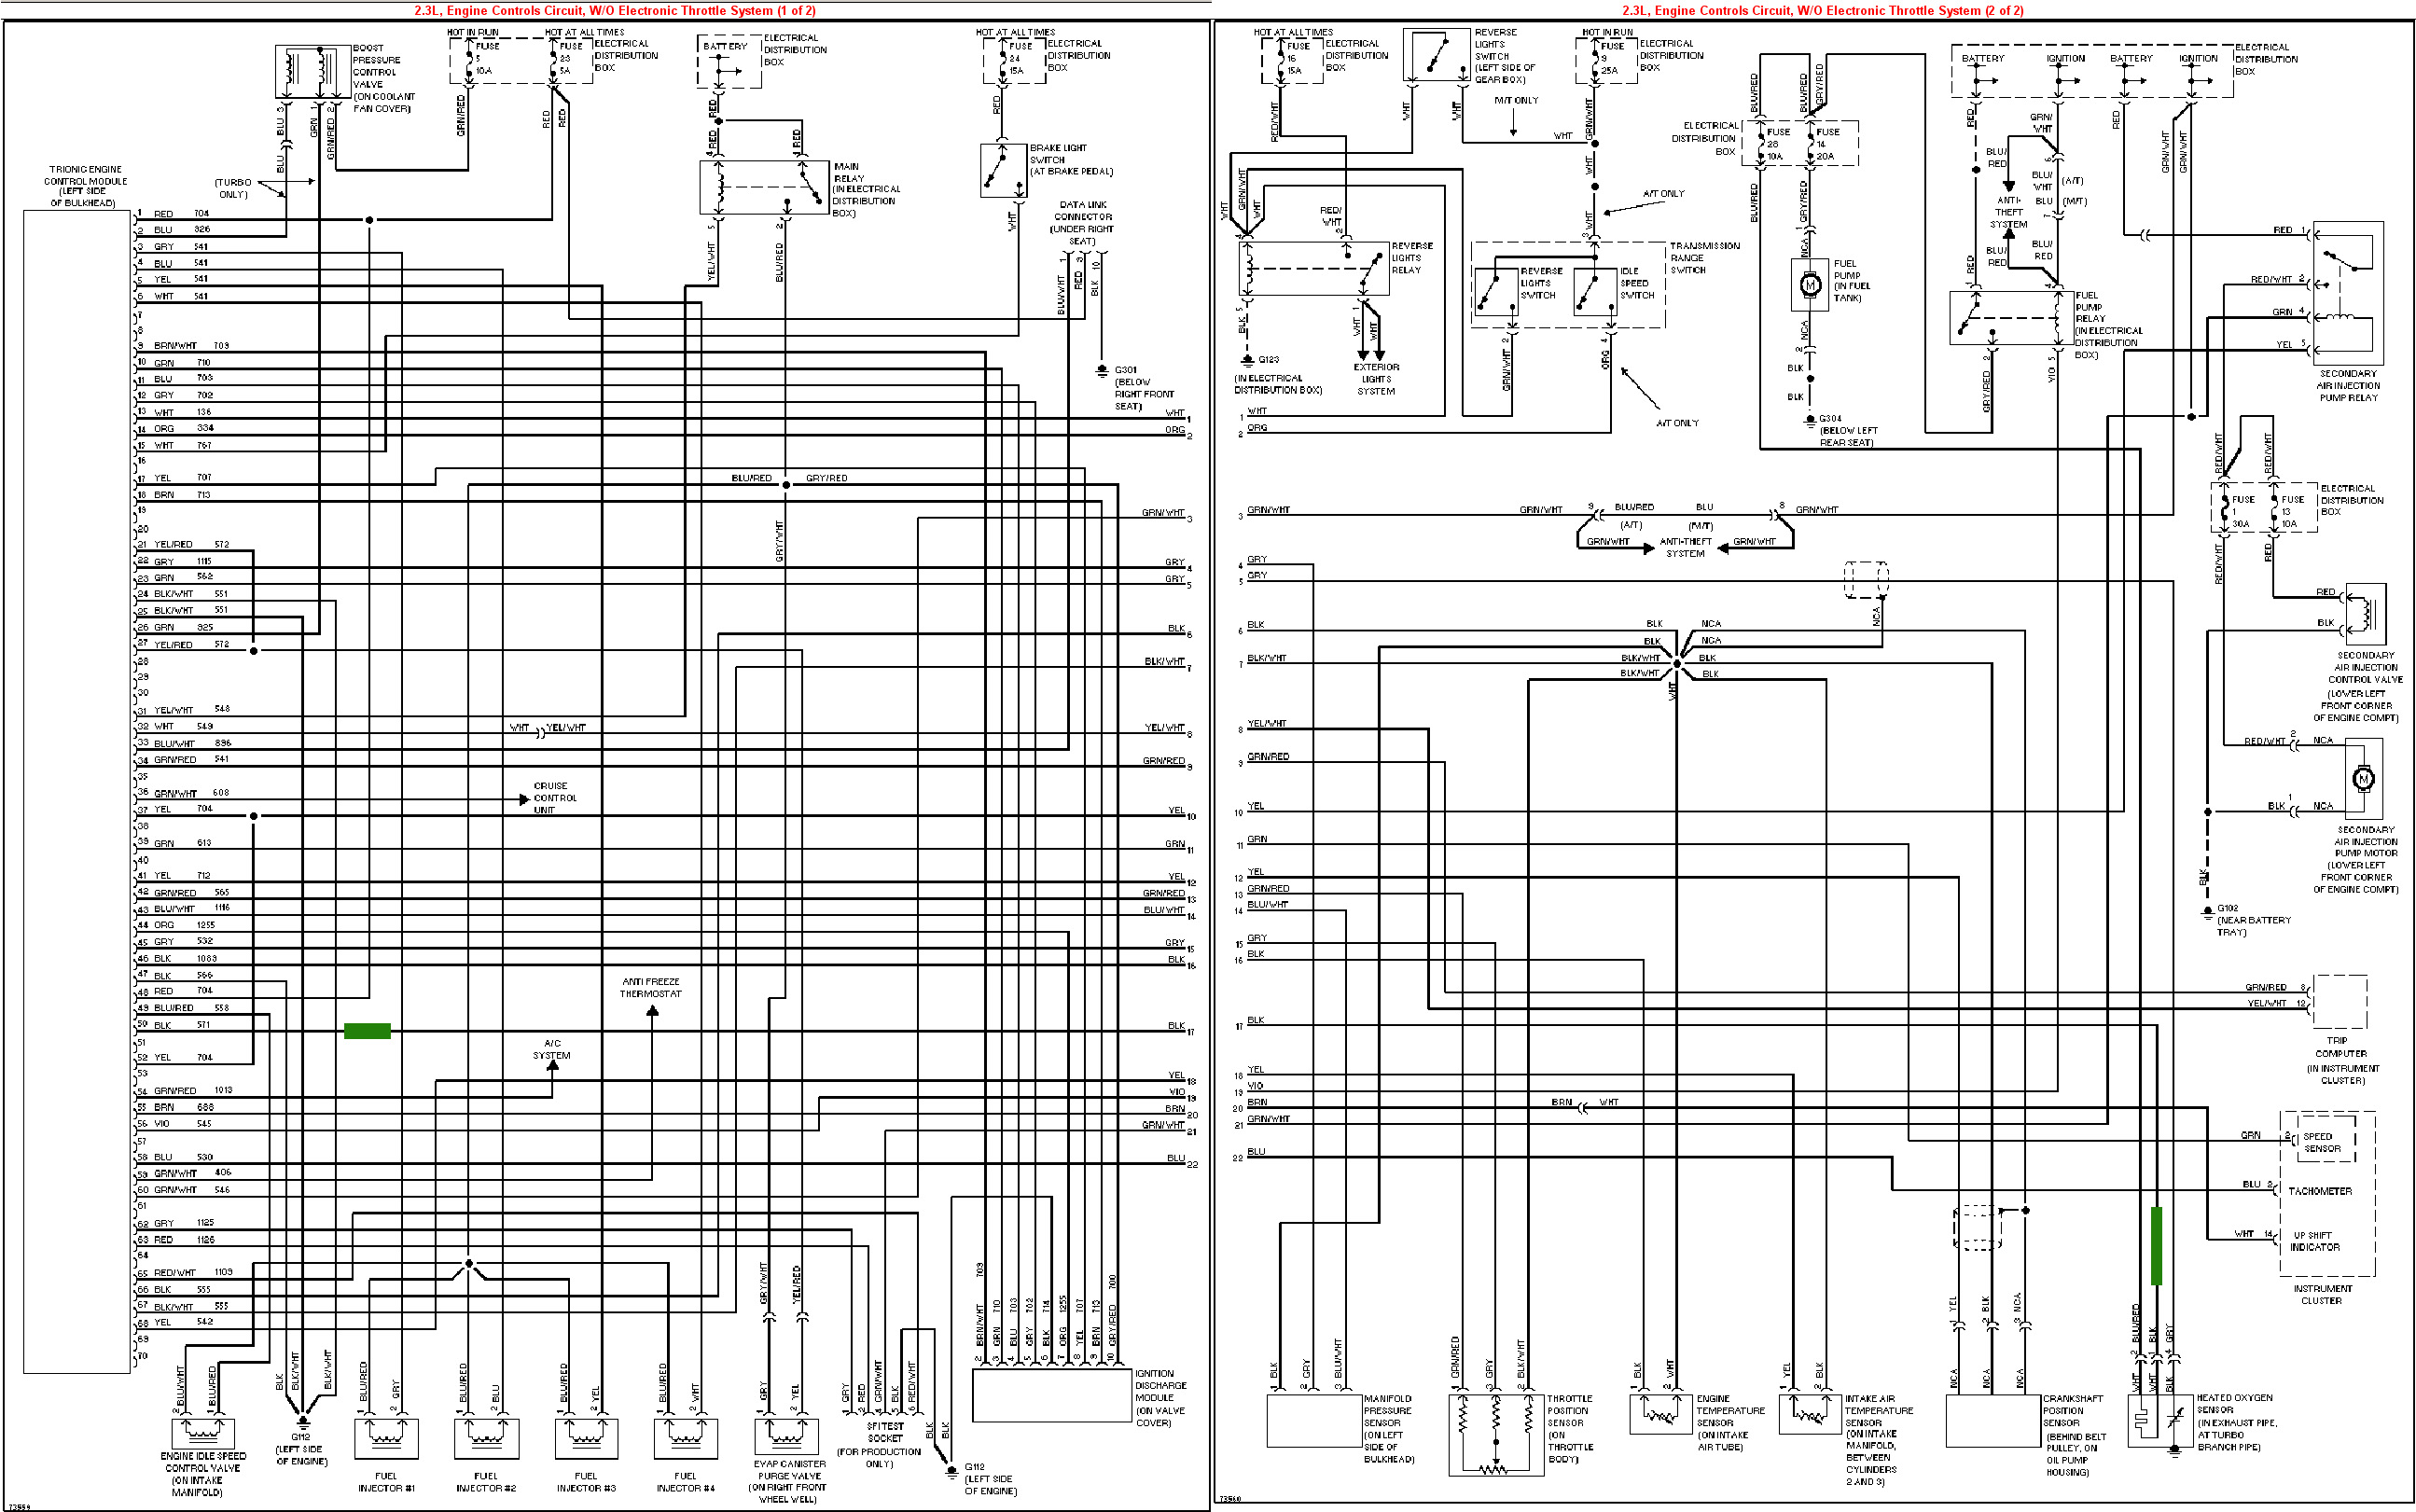 Saab 9 3 Abs Wiring Diagram Archive Of Automotive Wiring Diagram \u2022  1990 Saab 900 Engine Diagram 1999 Saab Wiring Diagram